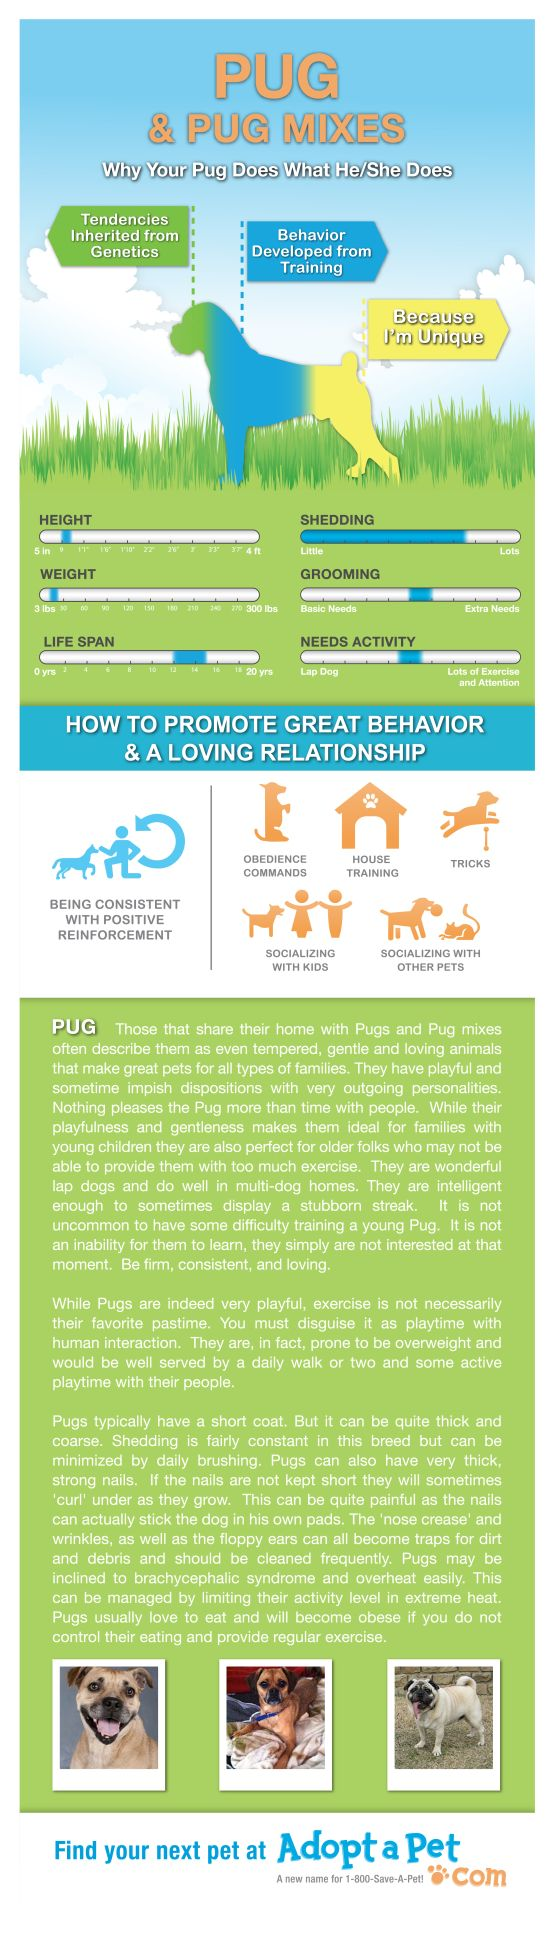 Dog Breeds 101 #Pugs are wonderful dogs that make great pets. @LorieAHuston  Check out this Infographic!